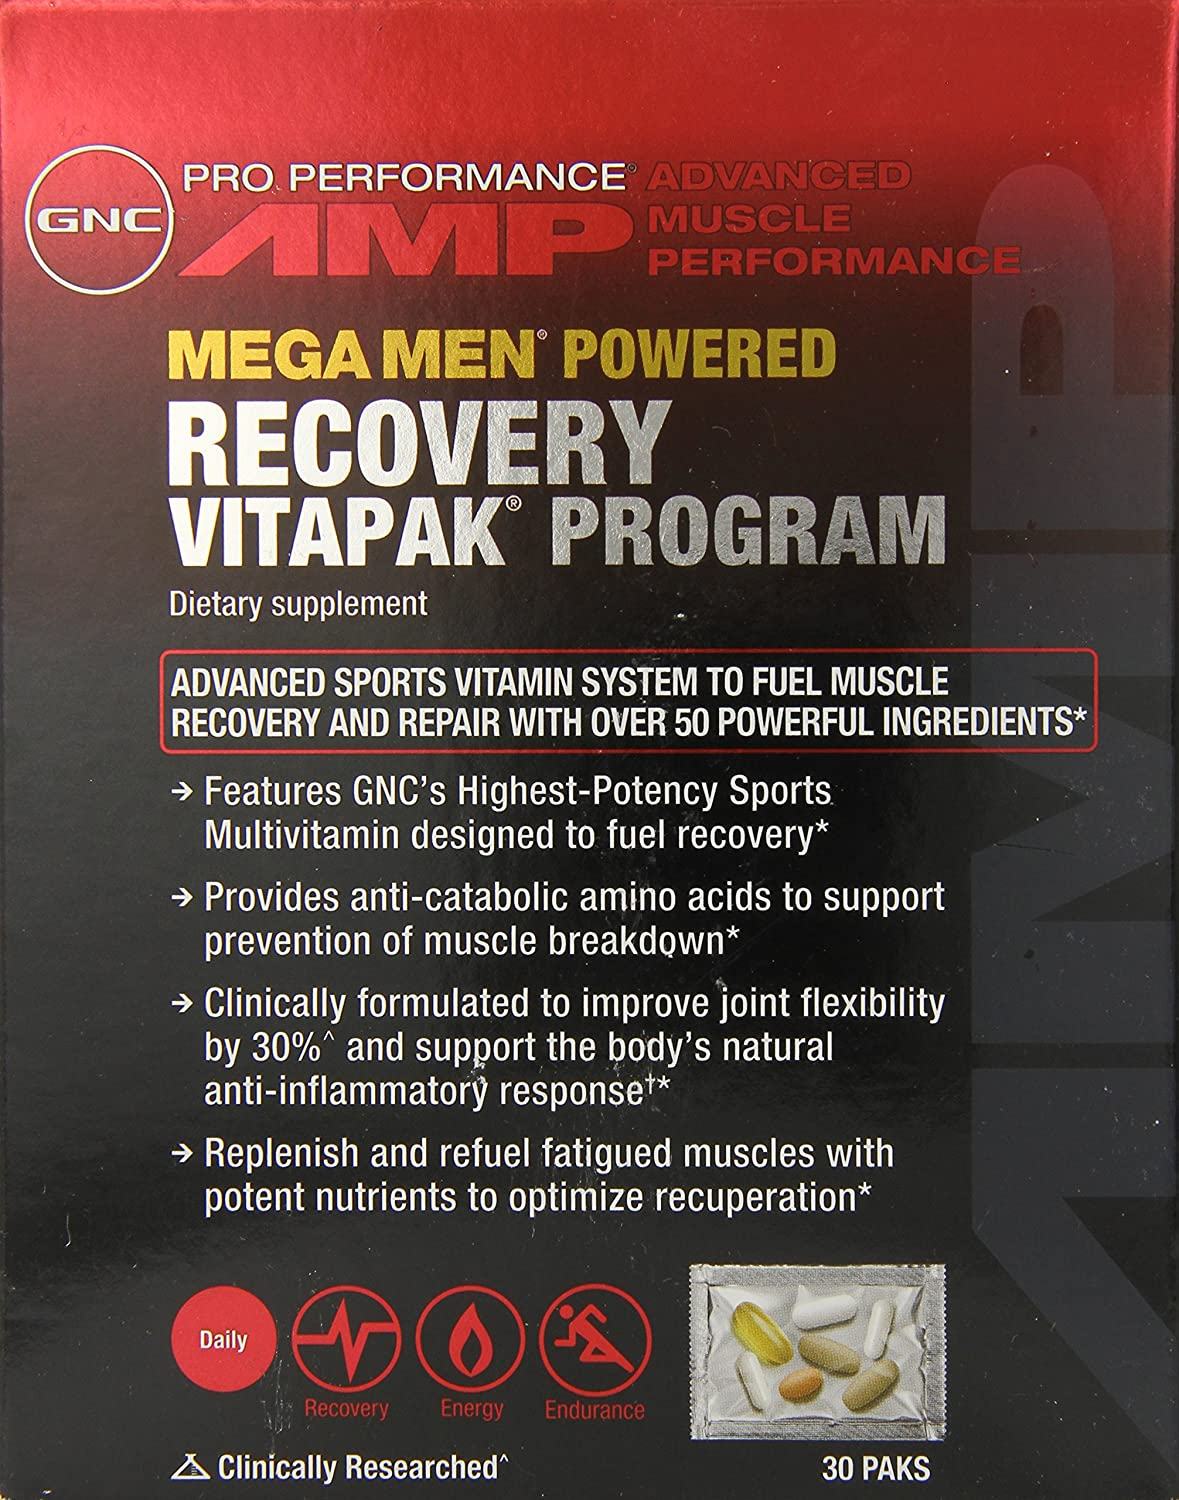 Gen x labs sports amp fitness performance kit 11 week program 4 - Amazon Com Gnc Pro Performance Amp Recovery Vitapak Program Capsules 30 Count Health Personal Care